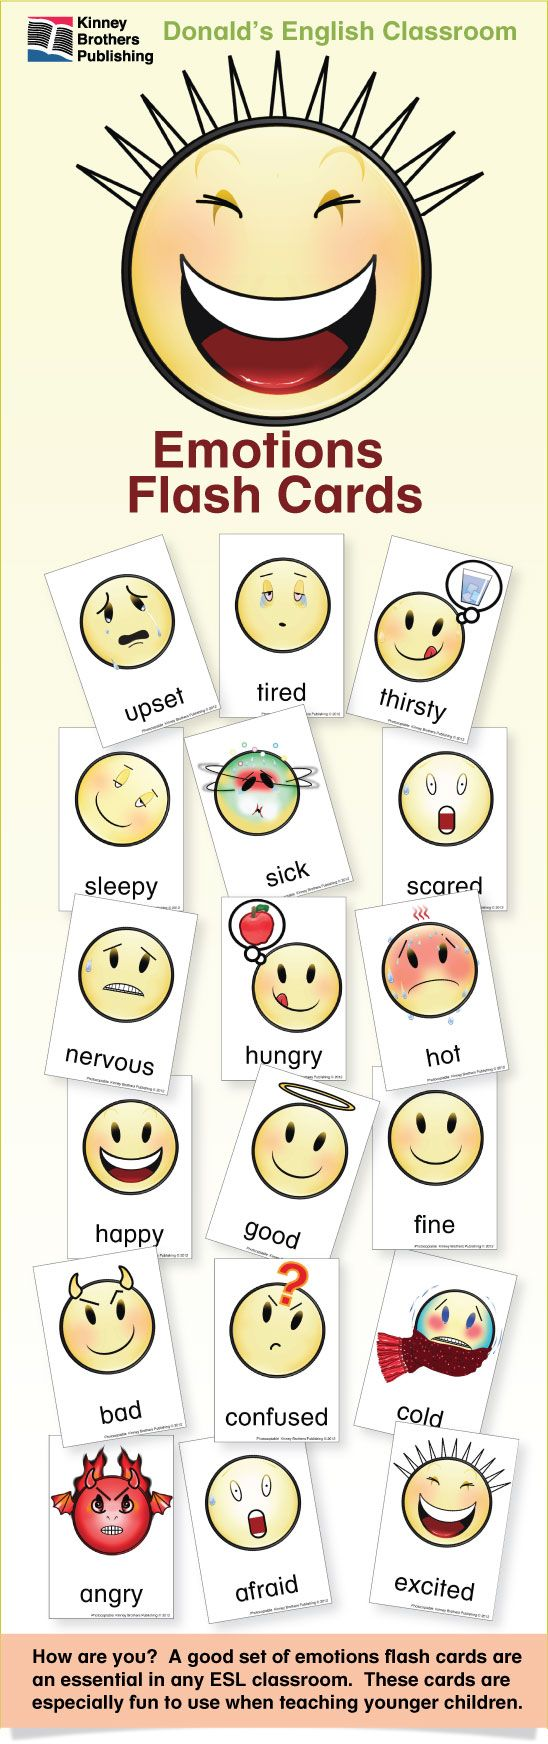 How are you? A good set of emotions flash cards are an essential in any ESL…